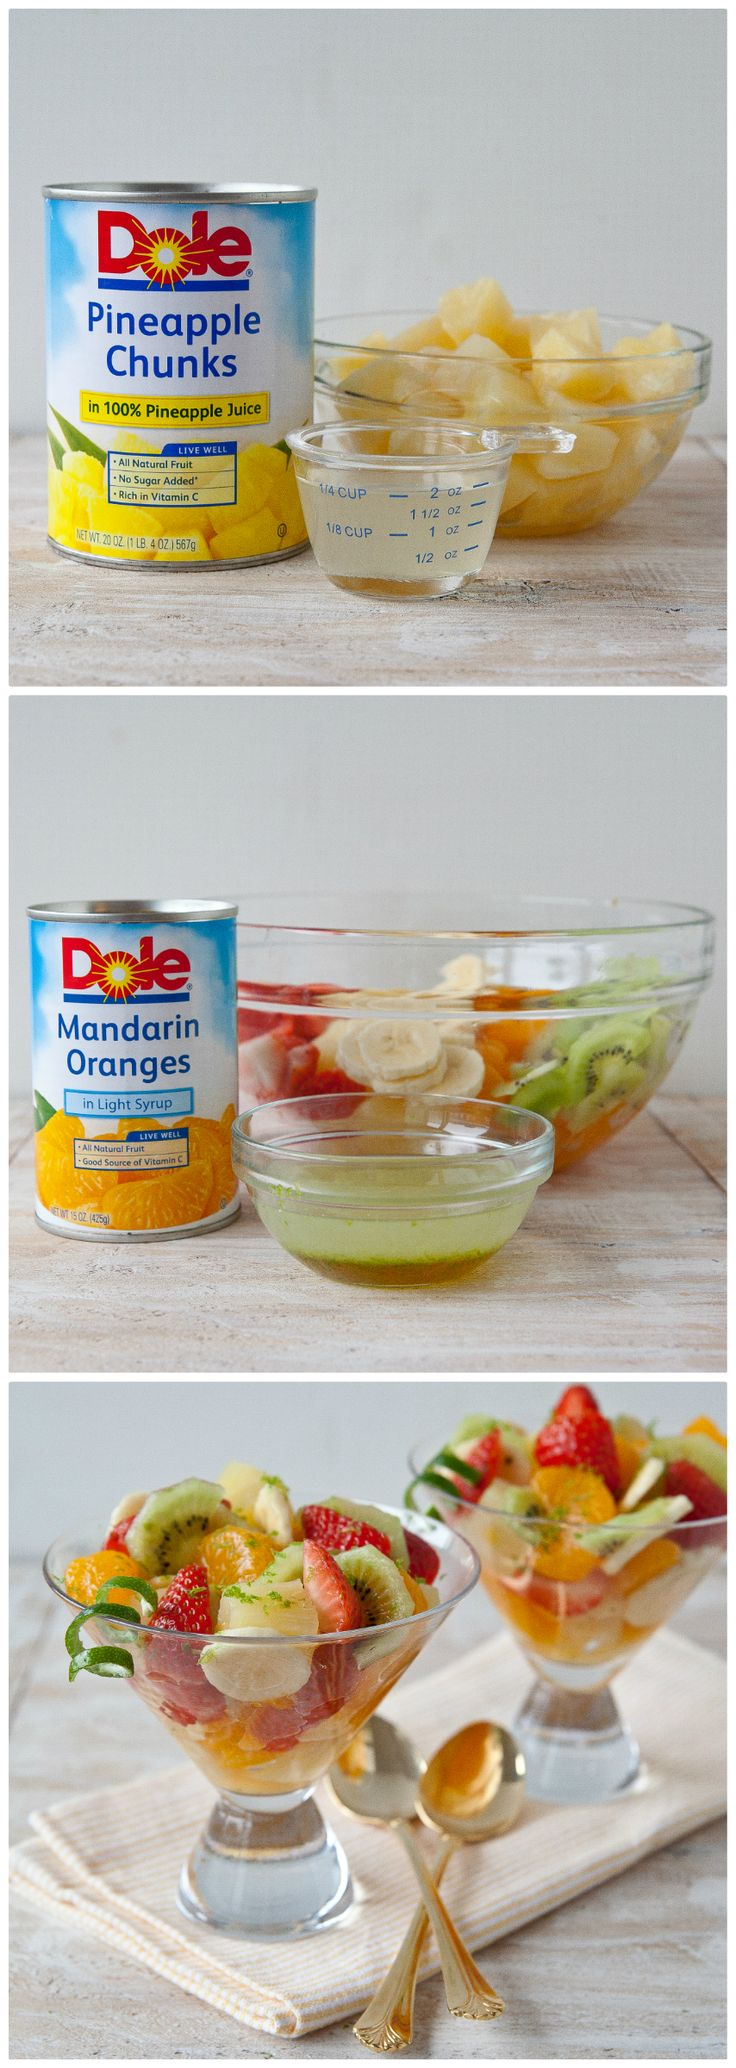 This classic fruit salad recipe is easy and delicious.  Toss together DOLE® Mandarin Oranges, Pineapple Chunks, fresh bananas, kiwi, and strawberries.  A little lime and honey gives this great flavor!